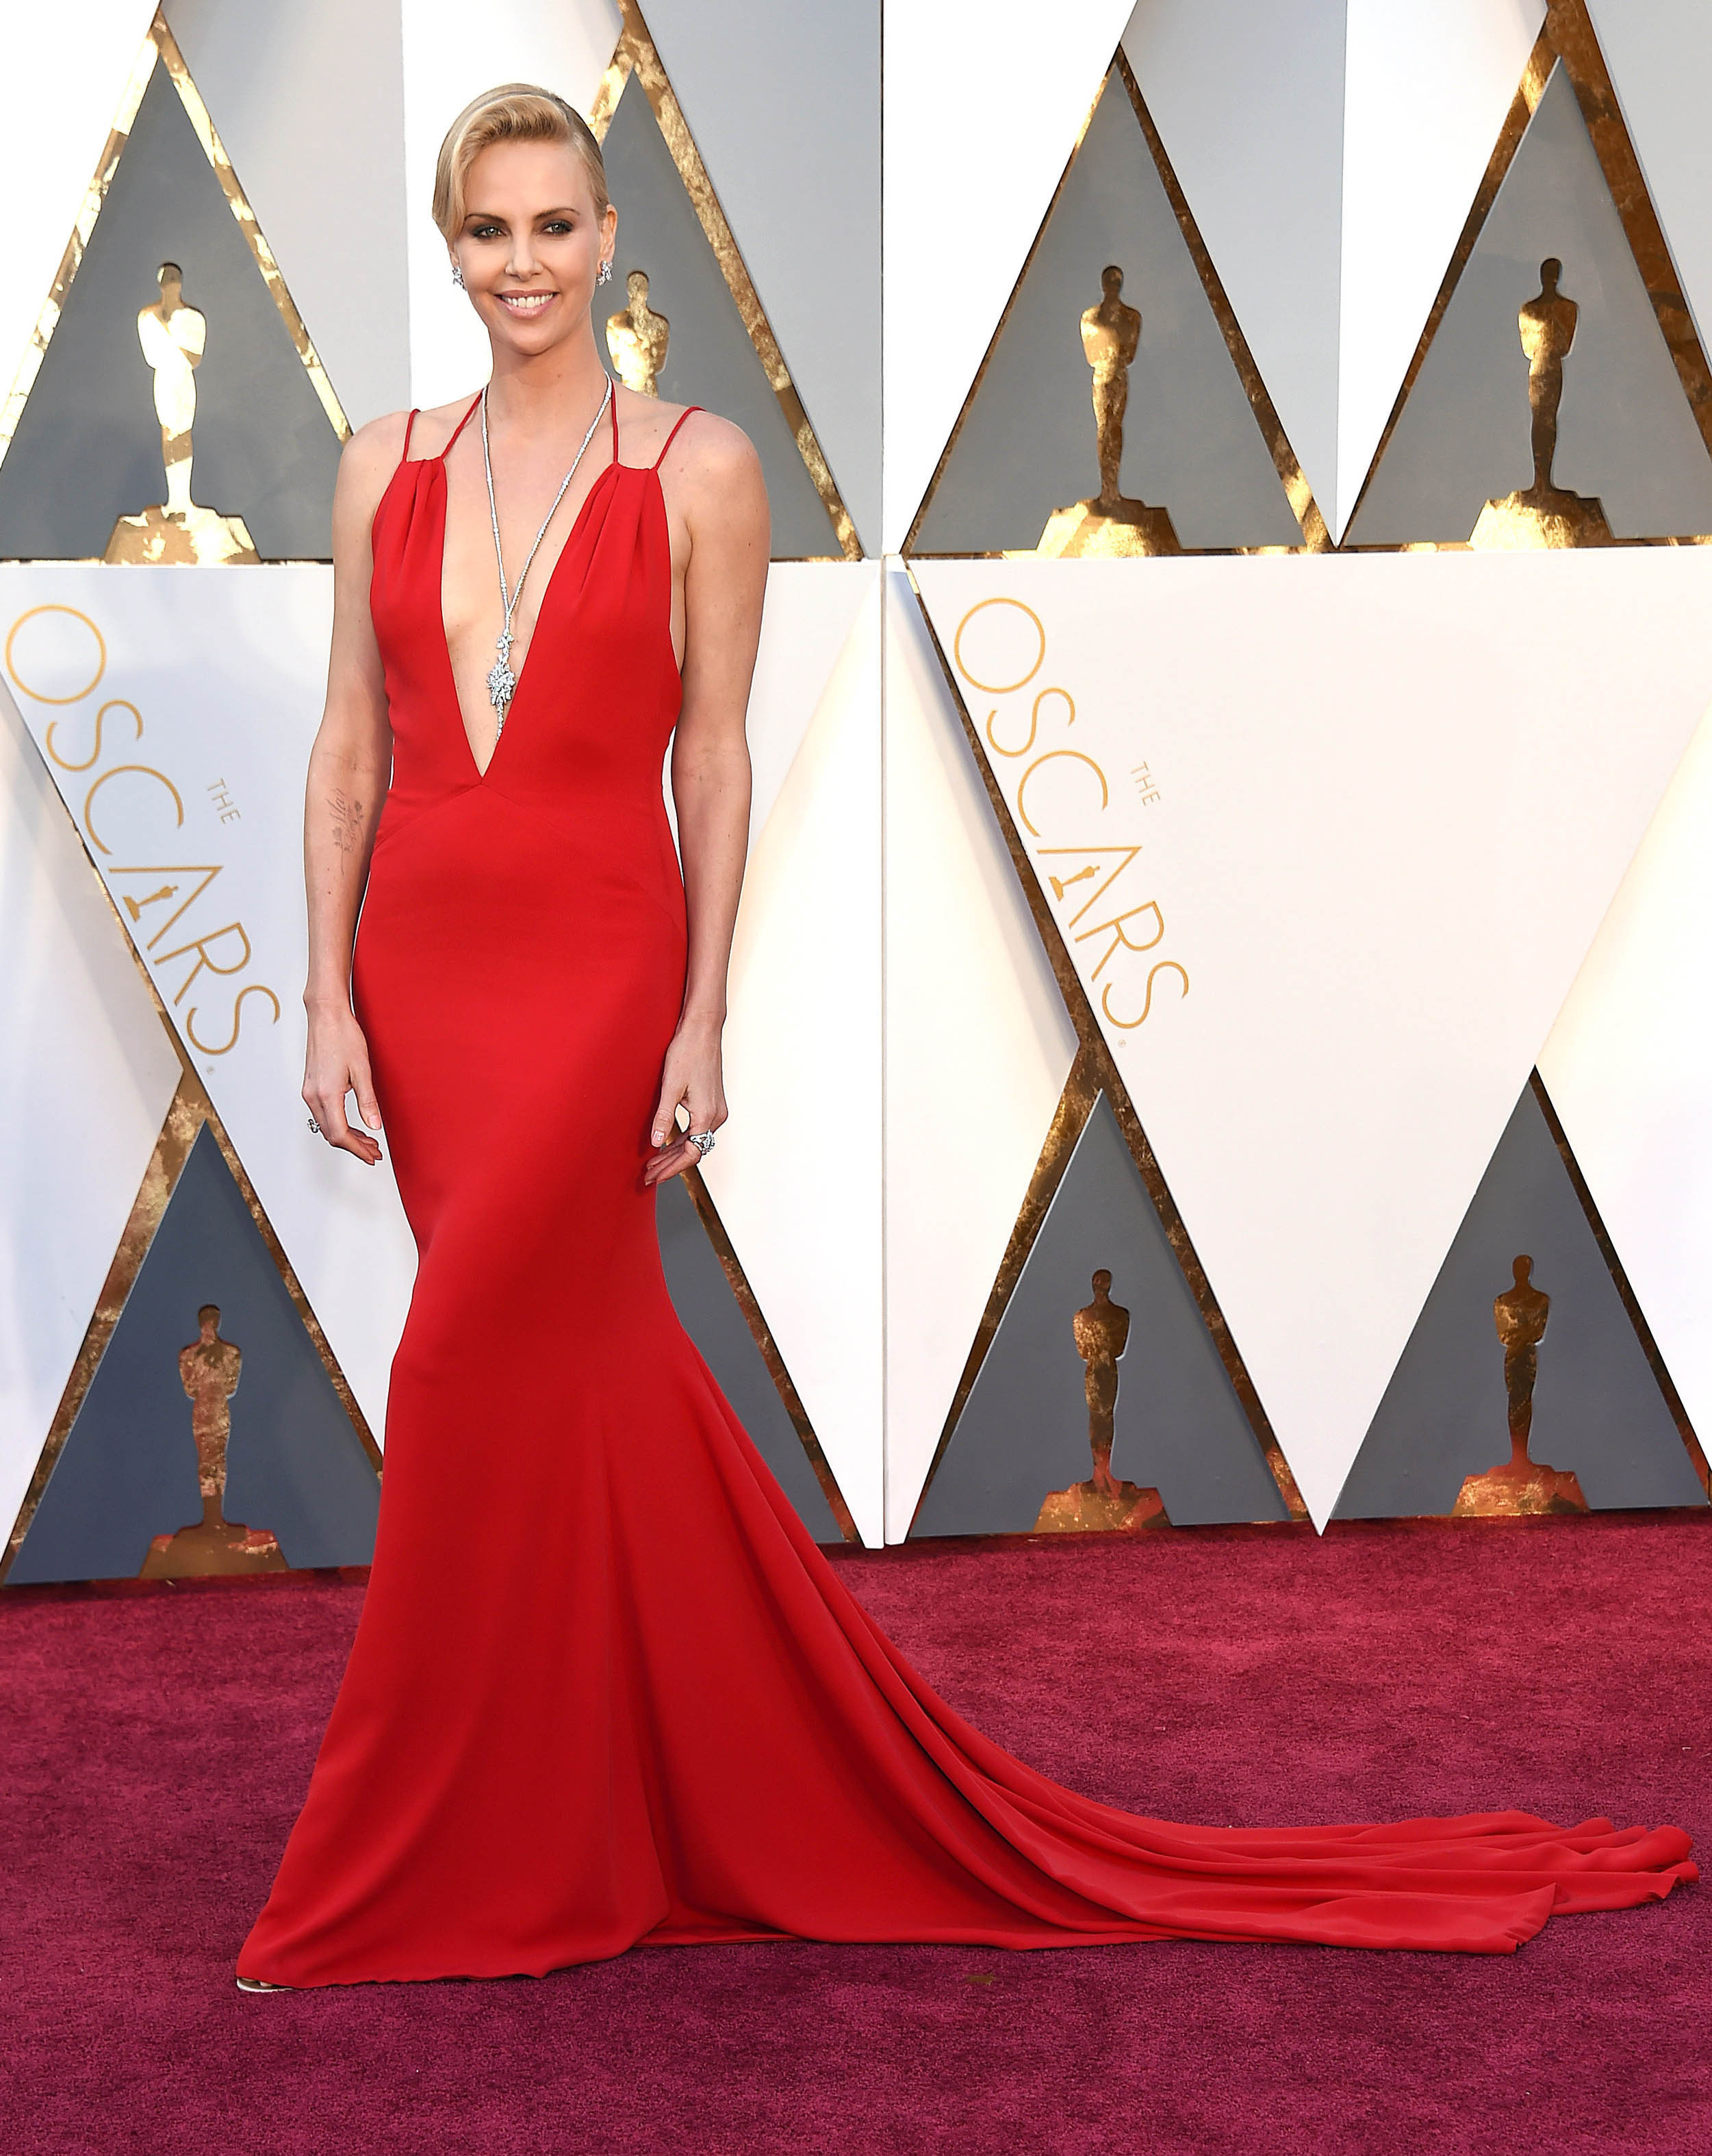 Photo by: KGC-11/starmaxinc.com STAR MAX Copyright 2016 ALL RIGHTS RESERVED Telephone/Fax: (212) 995-1196 2/28/16 Charlize Theron at the 88th Annual Academy Awards (Oscars). (Hollywood, CA, USA)